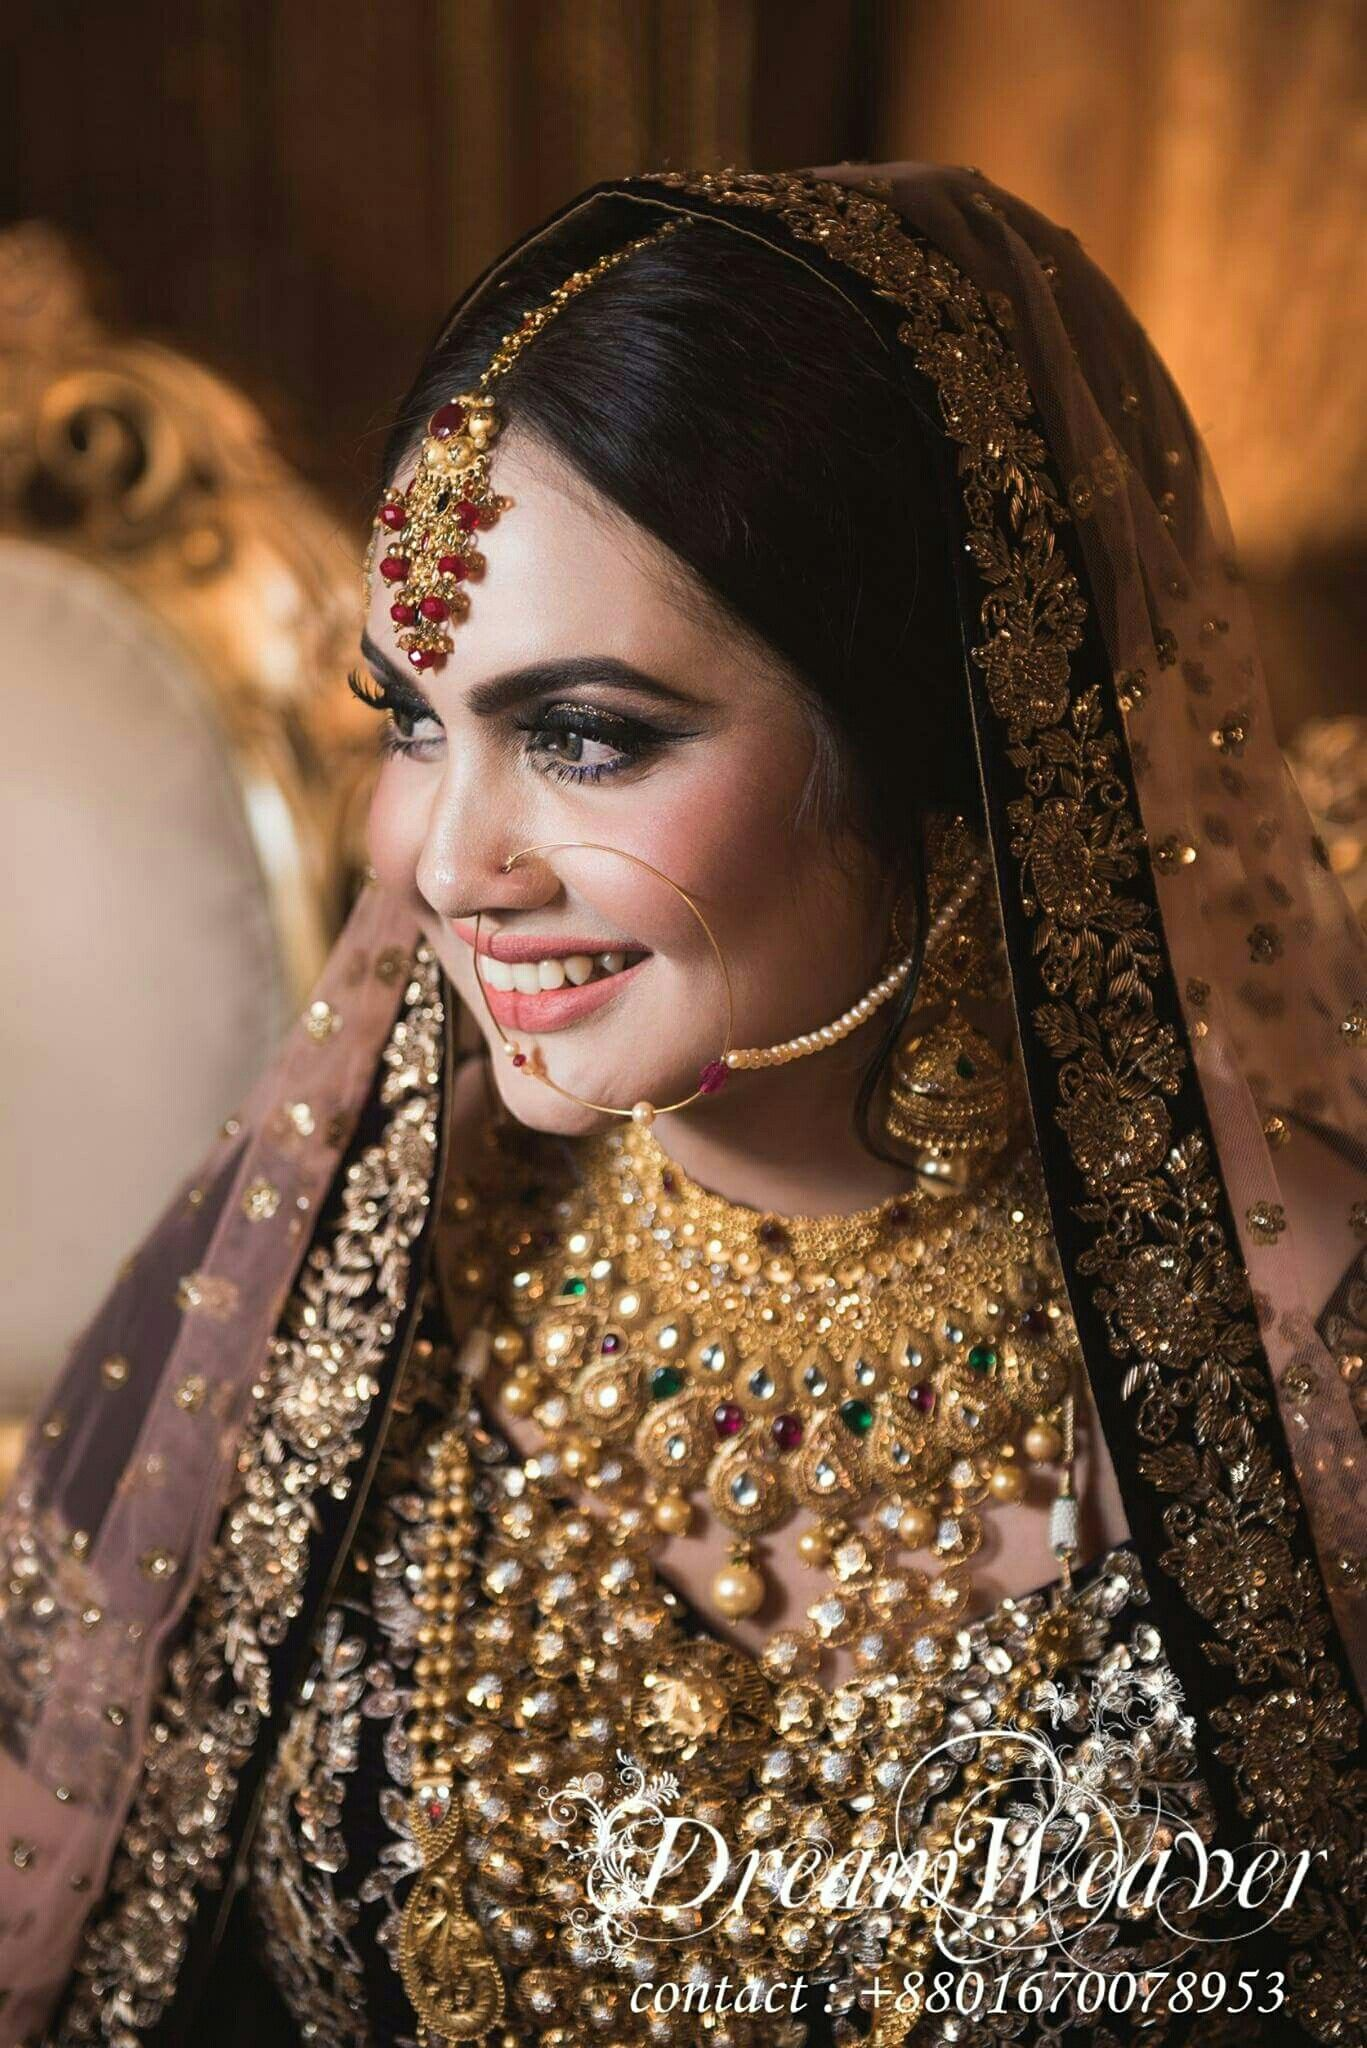 Pin by asol on pakistan bride pinterest indian beauty indian